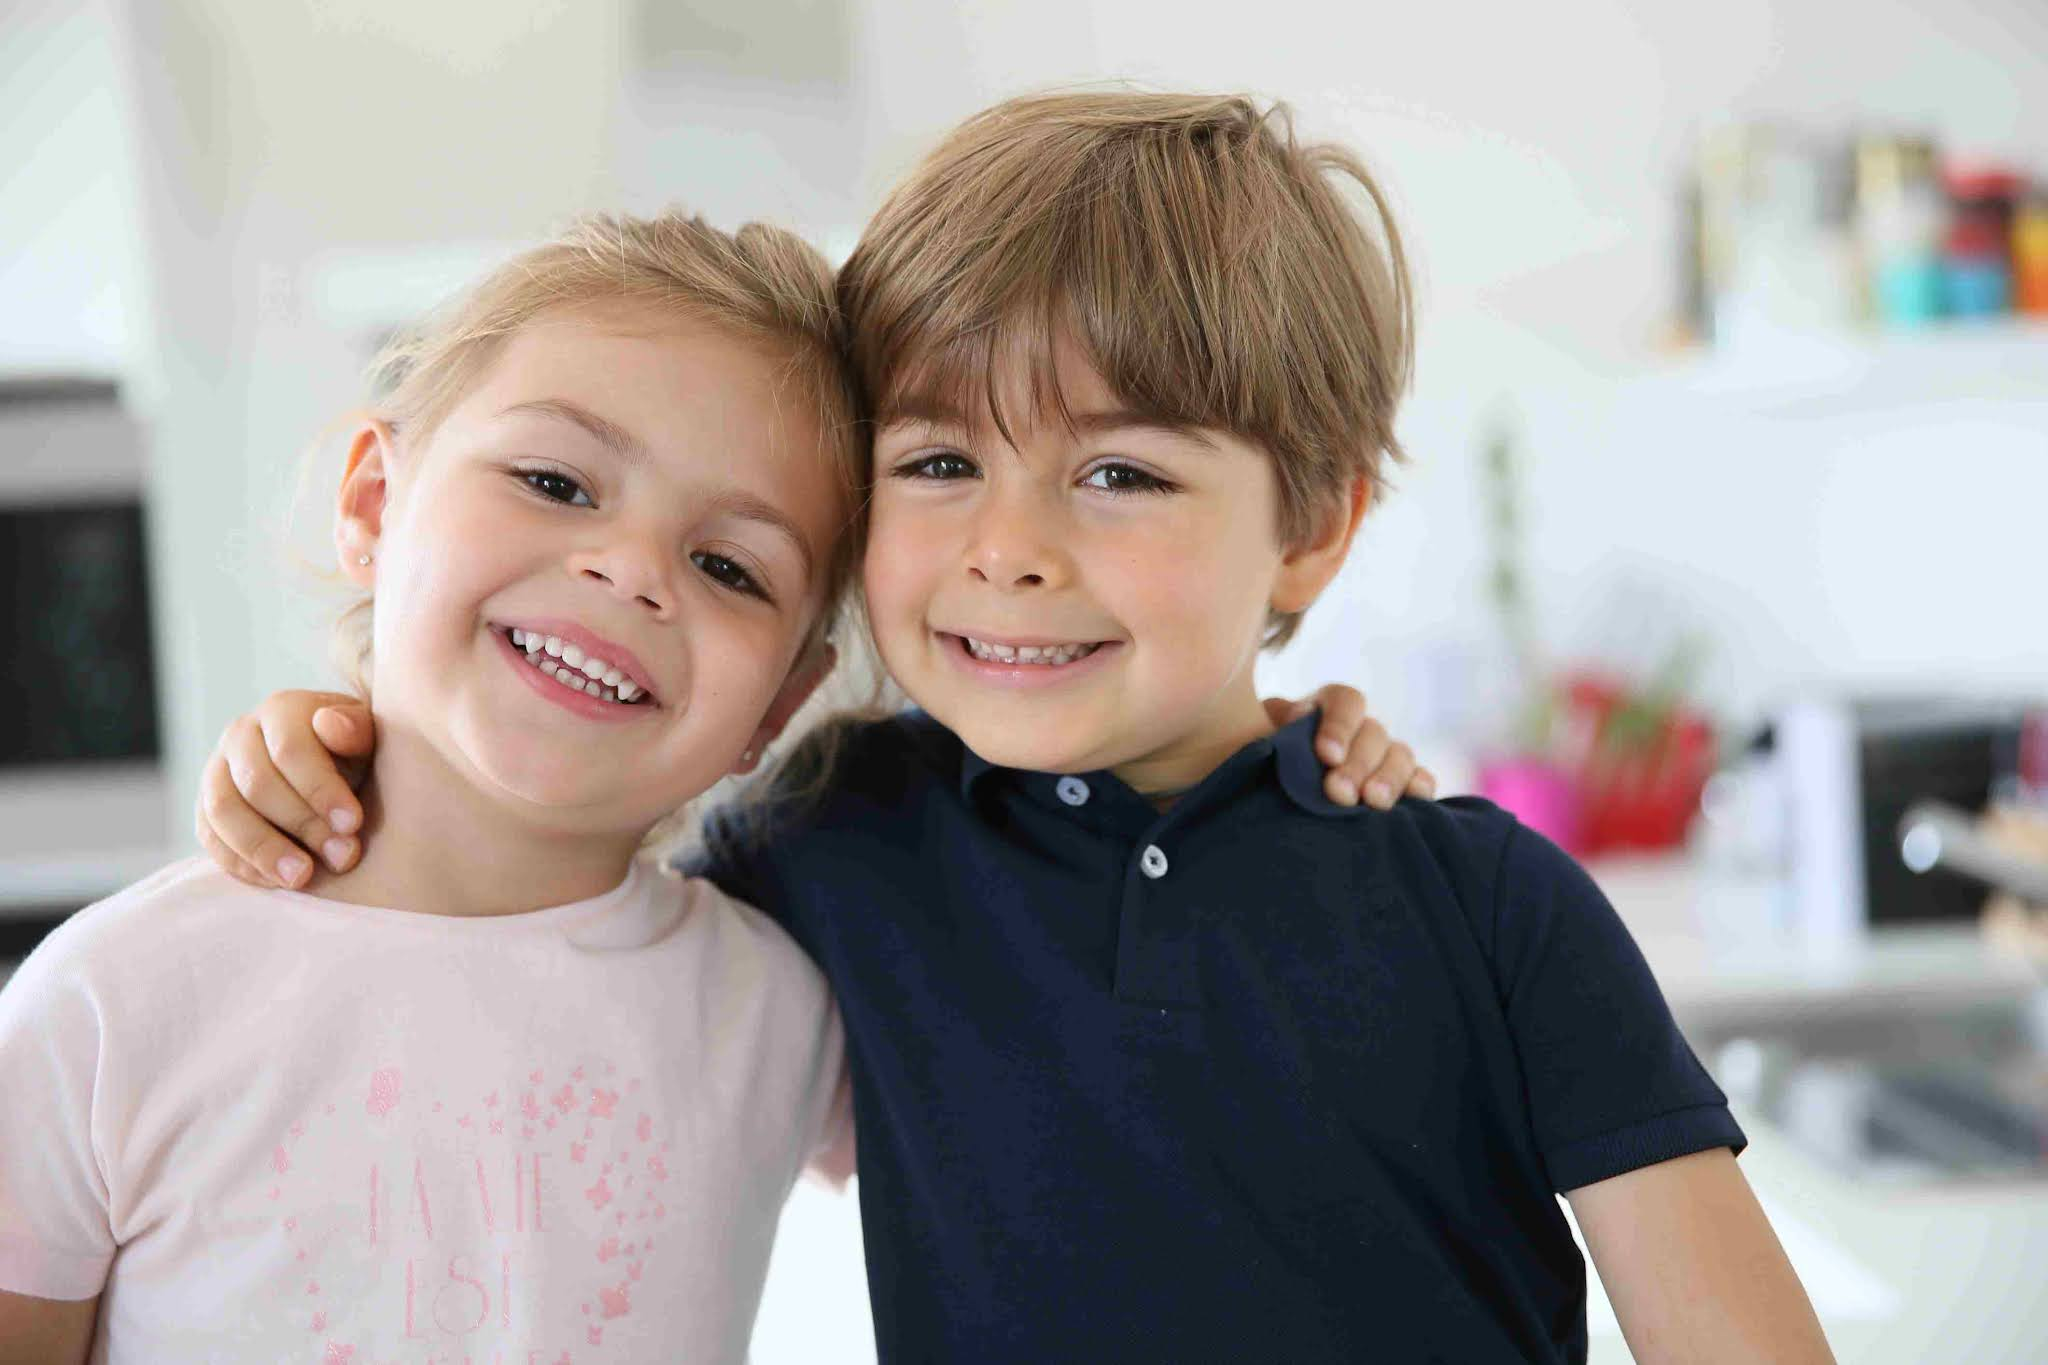 pick up lines for brother, best pick lines , a picture with baby boy with his sister